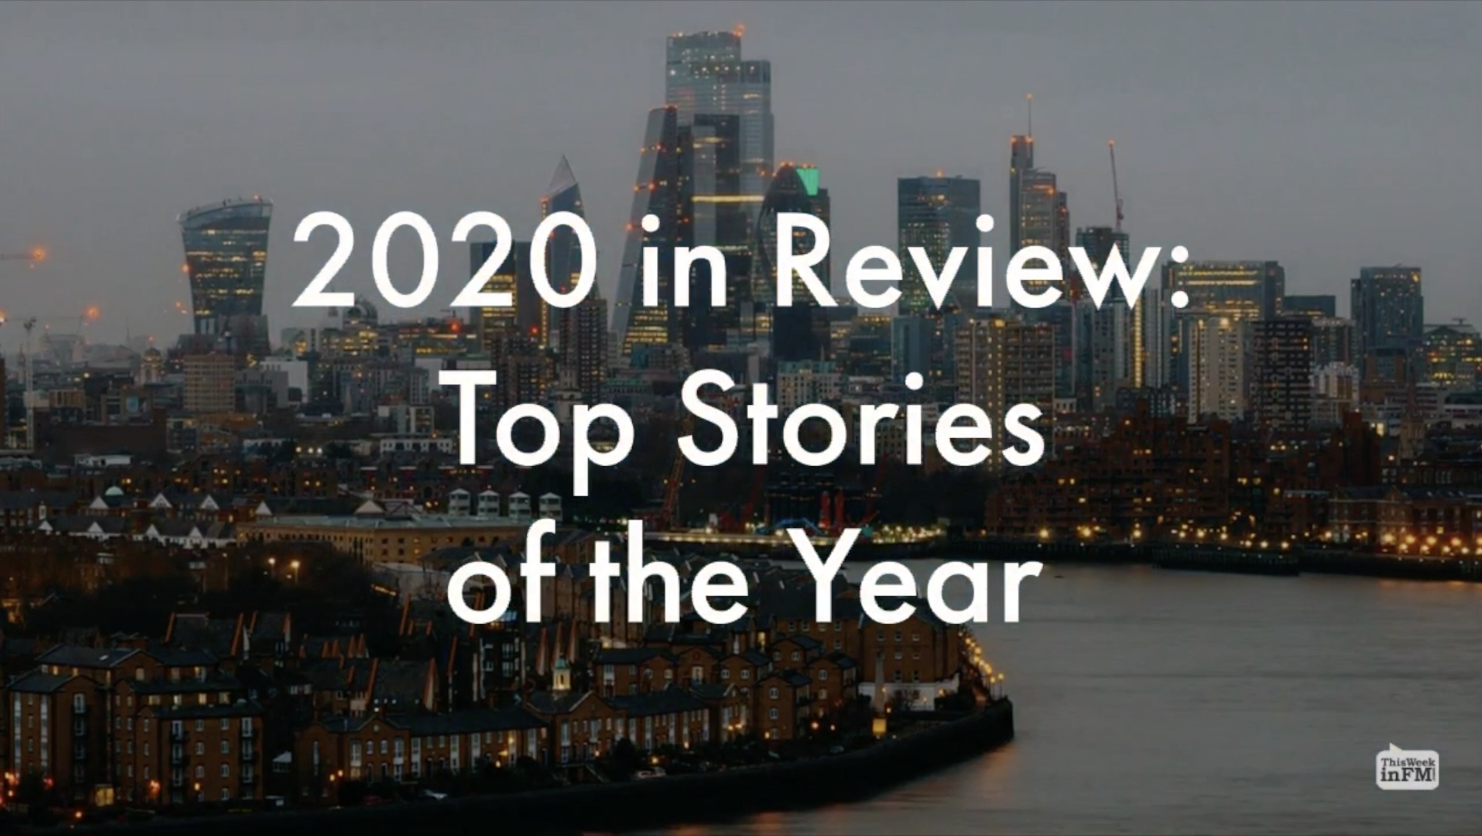 2020 in Review – Top Stories of the Year